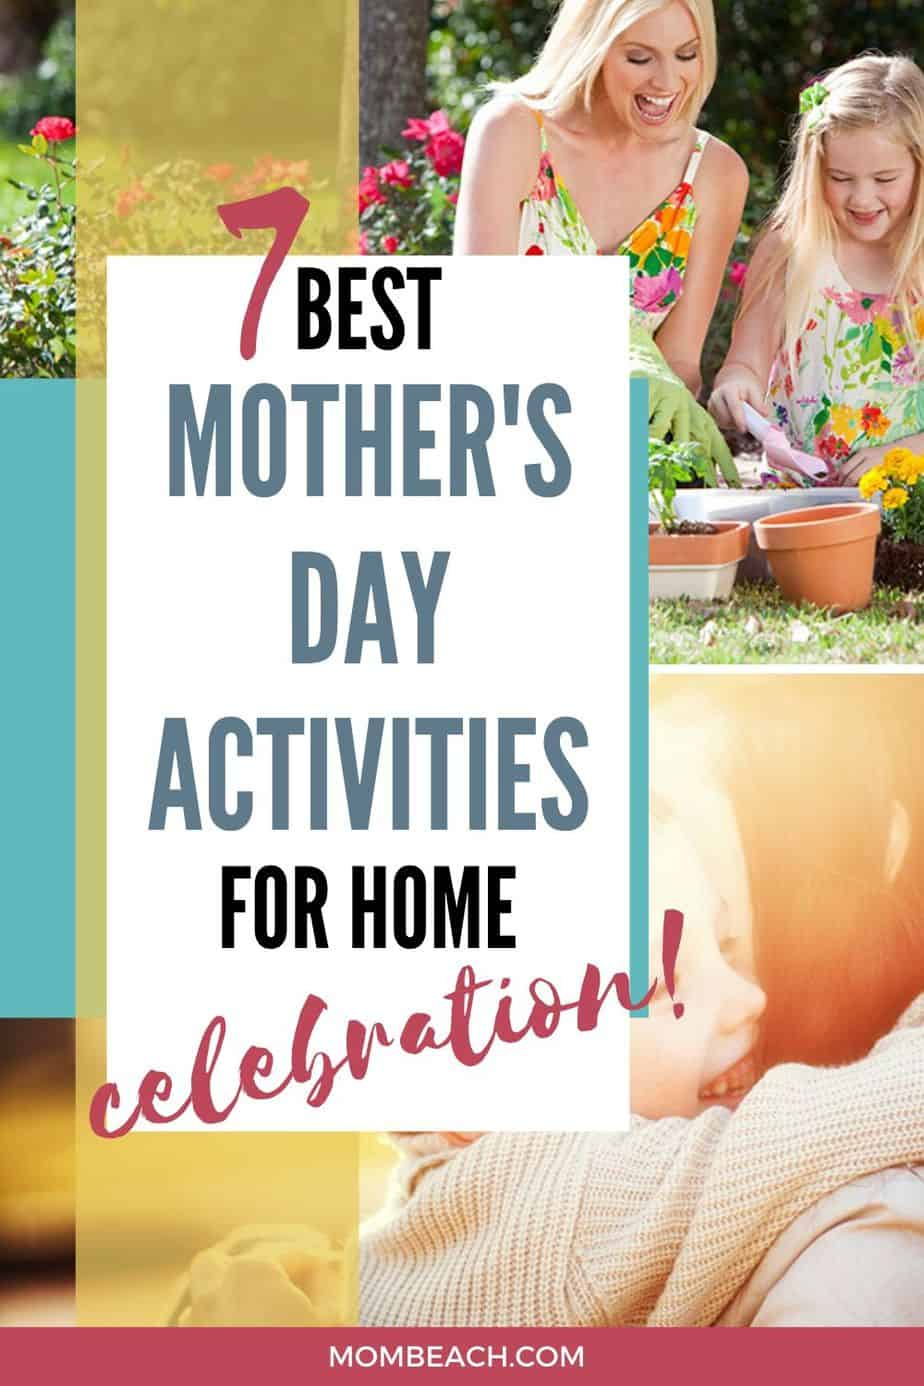 You won't believe how fun these Mother's Day activities are for celebrating at home. If you are spending Mother's Day at home, then these activities will bring joy to your day. These Mother's Day activities are fun to go together, for adults, for toddlers, for kids, for preschool, and preschoolers. Have a happy Mother's Day! #mothersdayactivities #mothersdayactivitiestodotogether #mothersdayactivitiesforkids #mothersdayactivitiesathome #mothersdaythingstodoathome